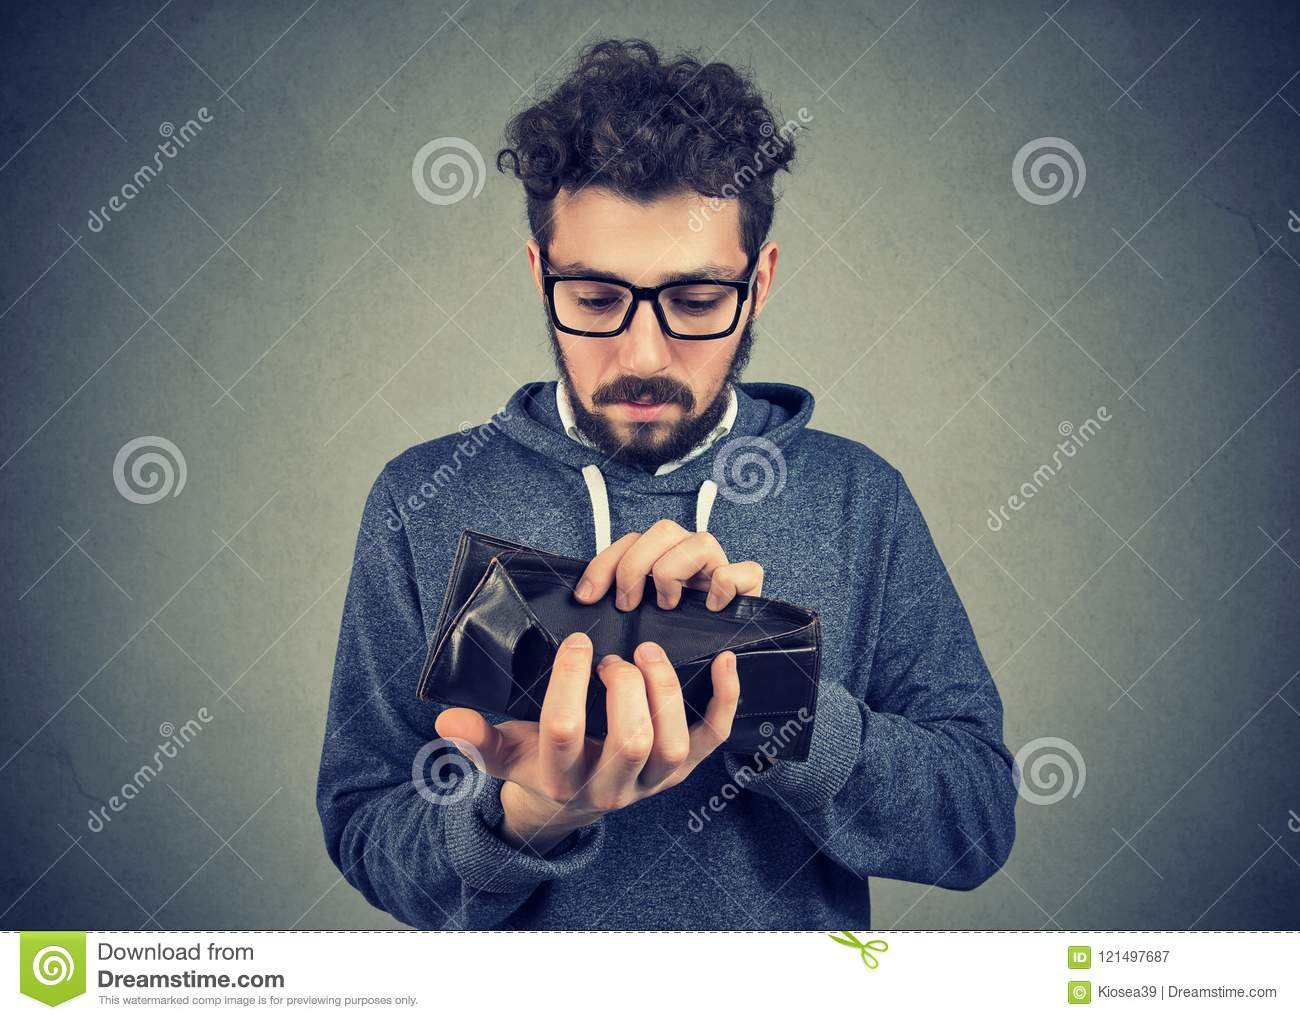 Man with no money holding an empty wallet